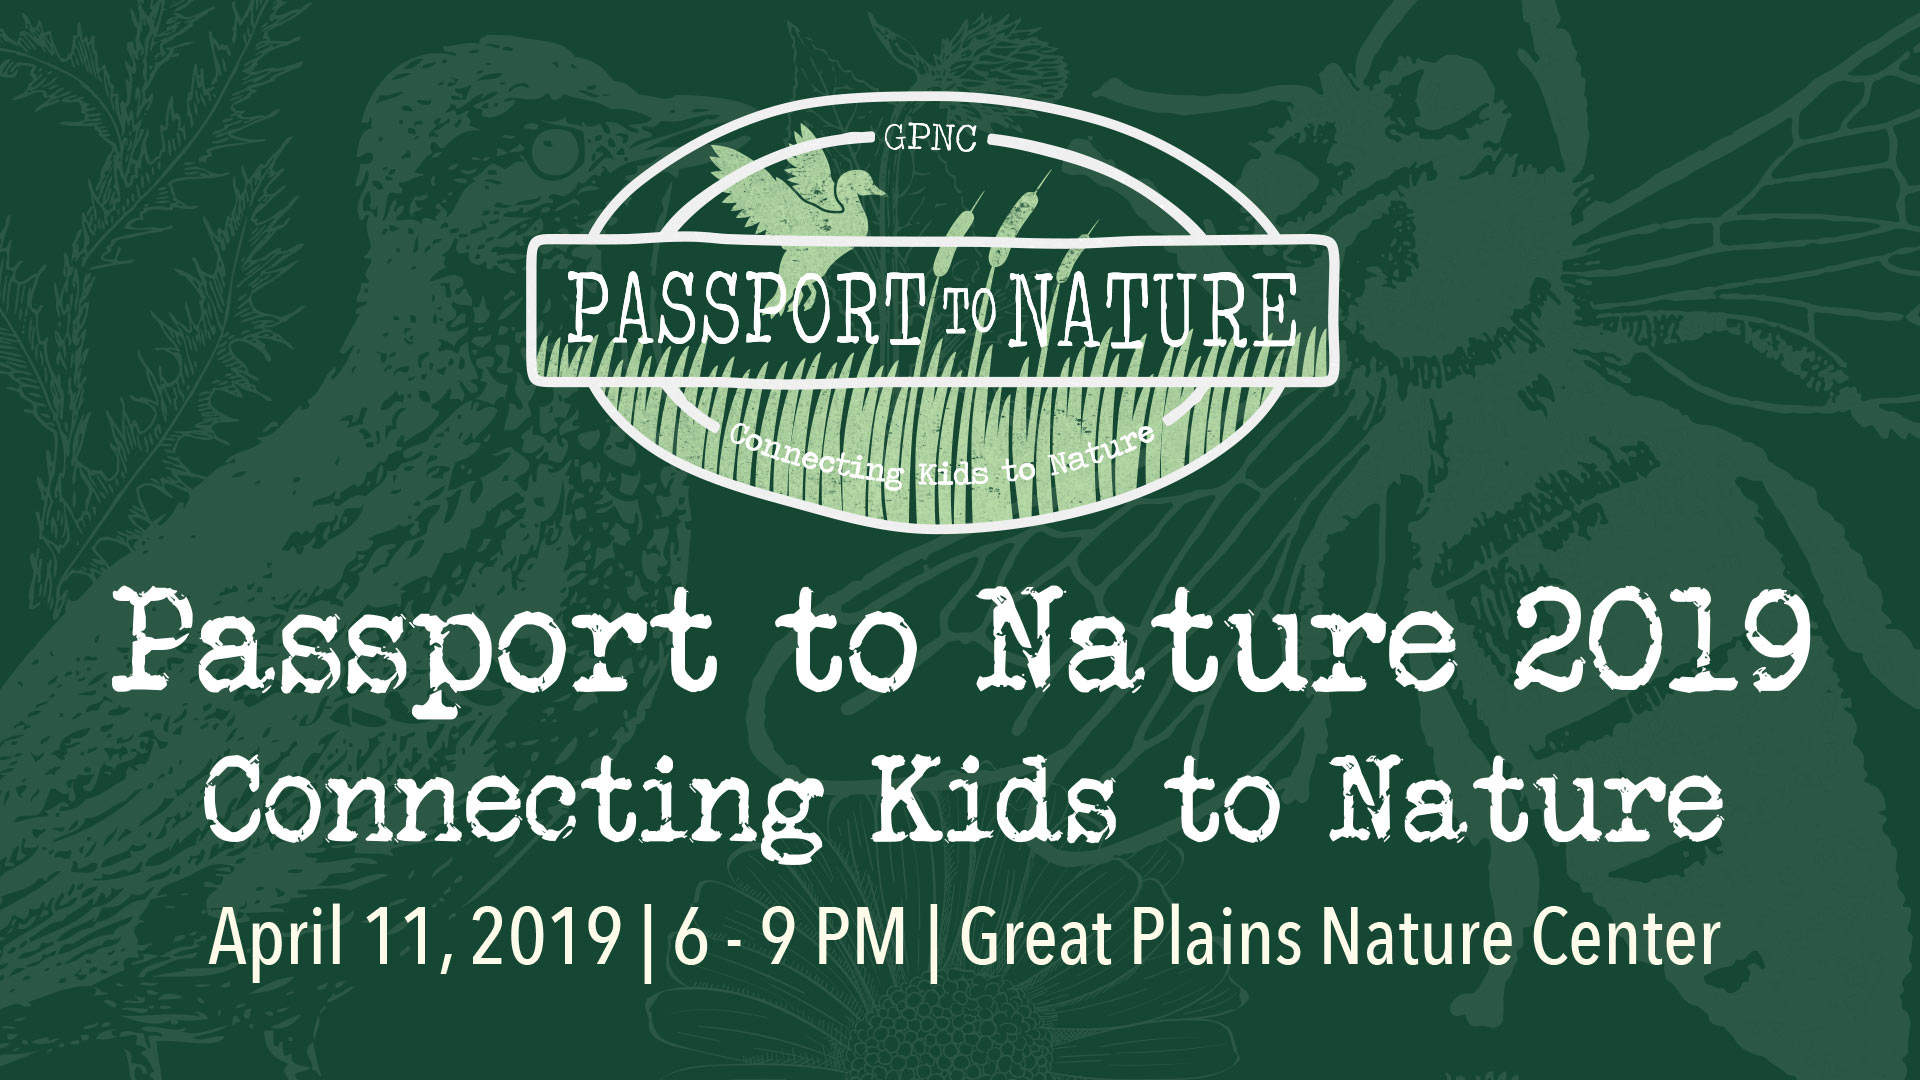 Passport to Nature on Thursday, April 11, 2019 6 - 9 pm